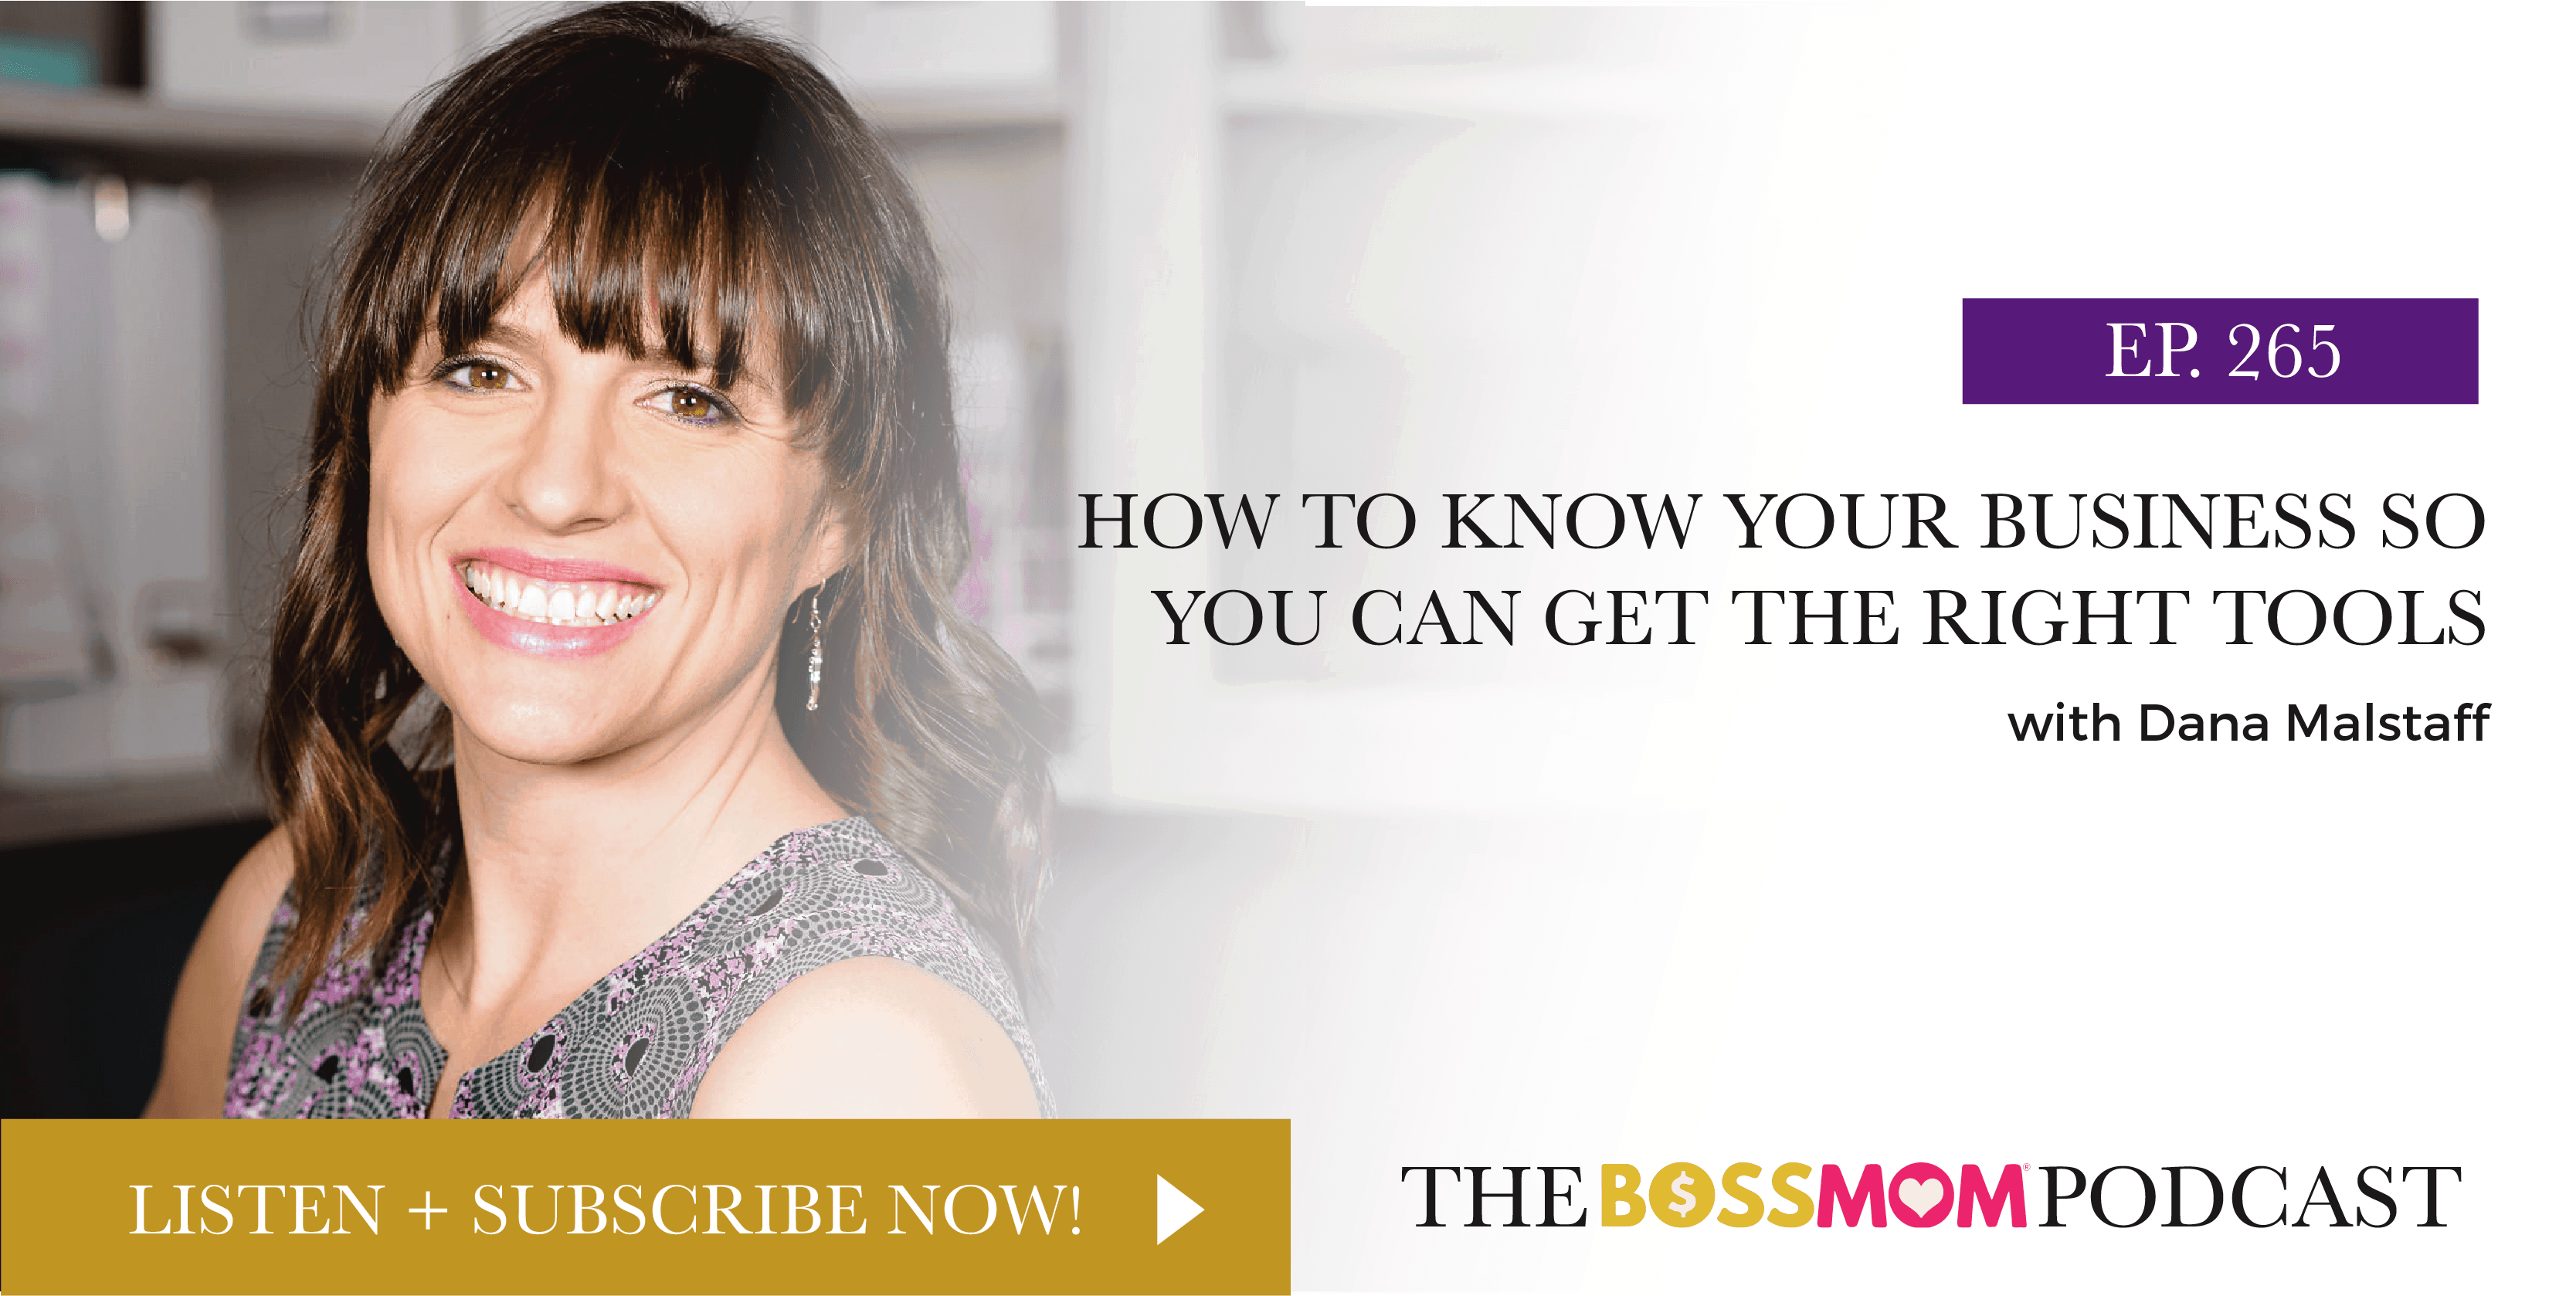 Episode 265: How to Know Your Business So You Can Get the Right Tools